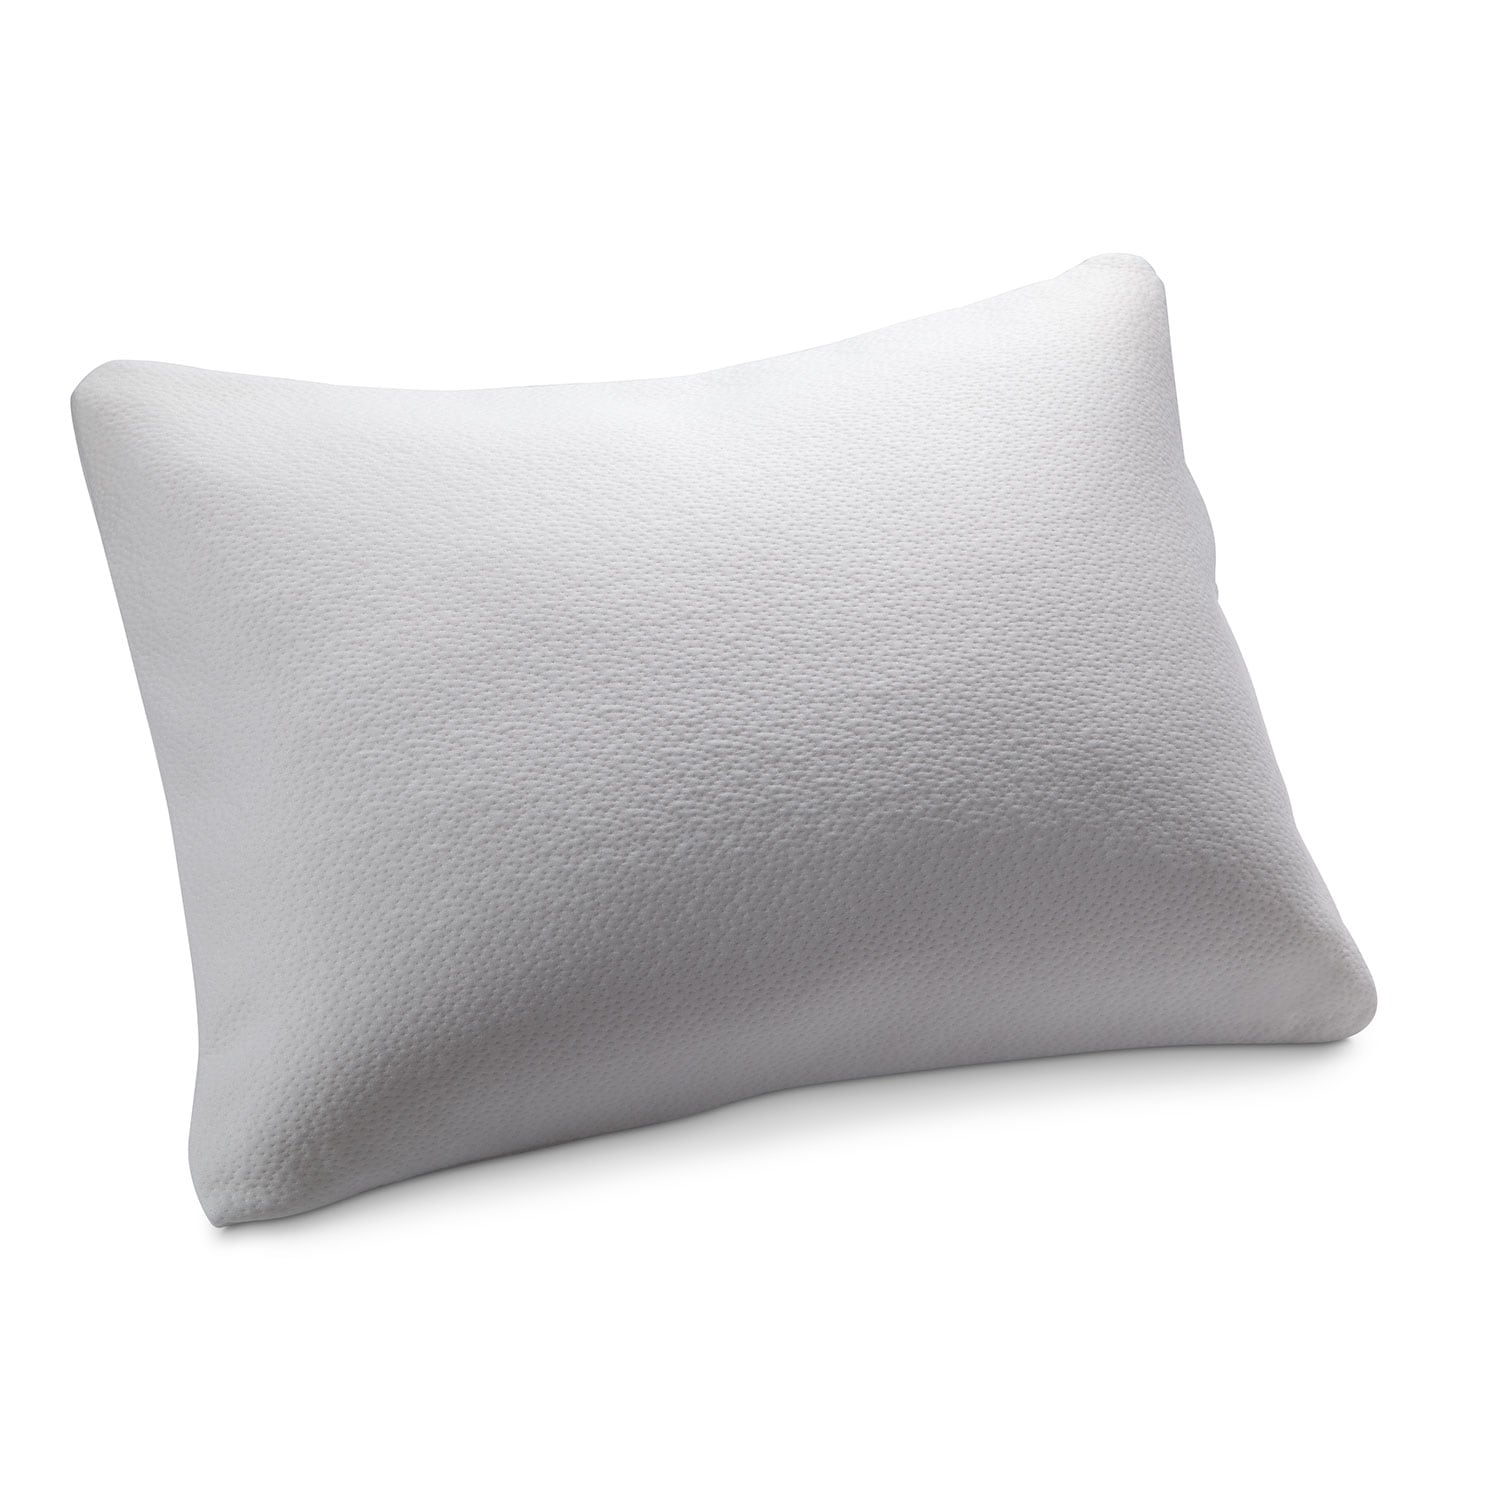 Response Visco Pillow